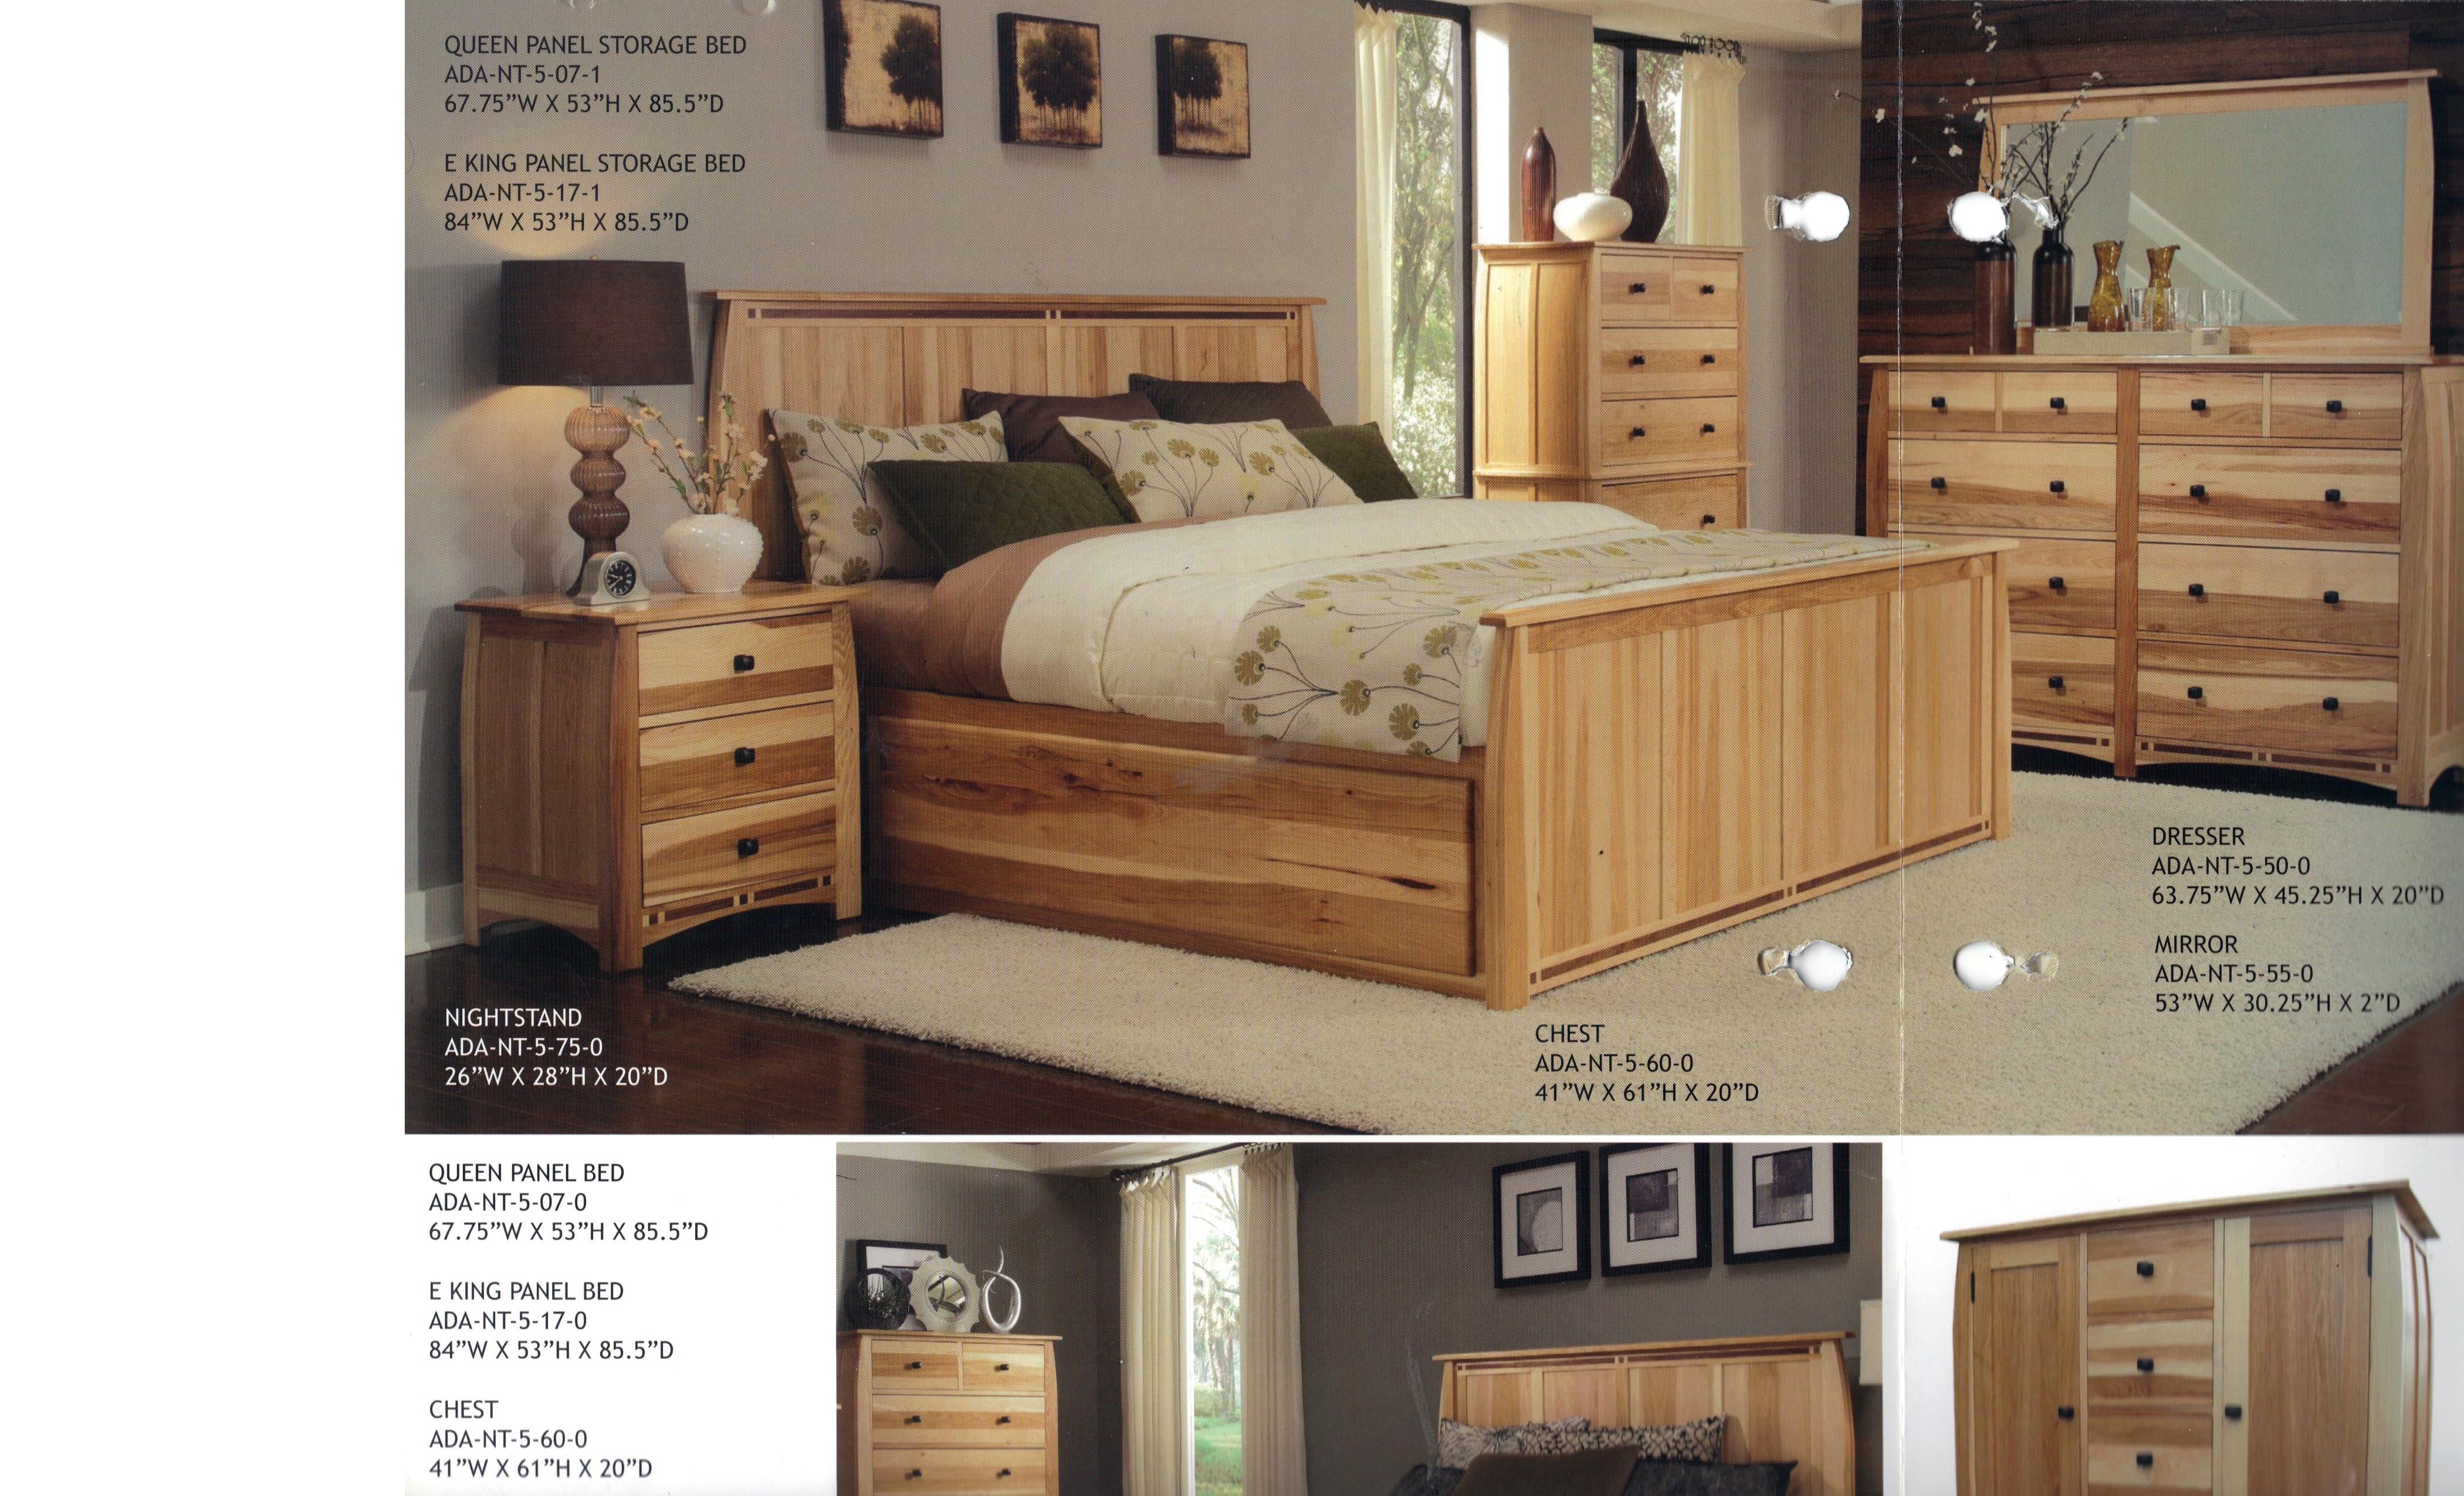 Overview Of 6 Piece Set Includes Panel Bed With Or W/o Storage, Dresser,  Mirror, Double Door Chest, Chest Of Drawers, And Night Stand.